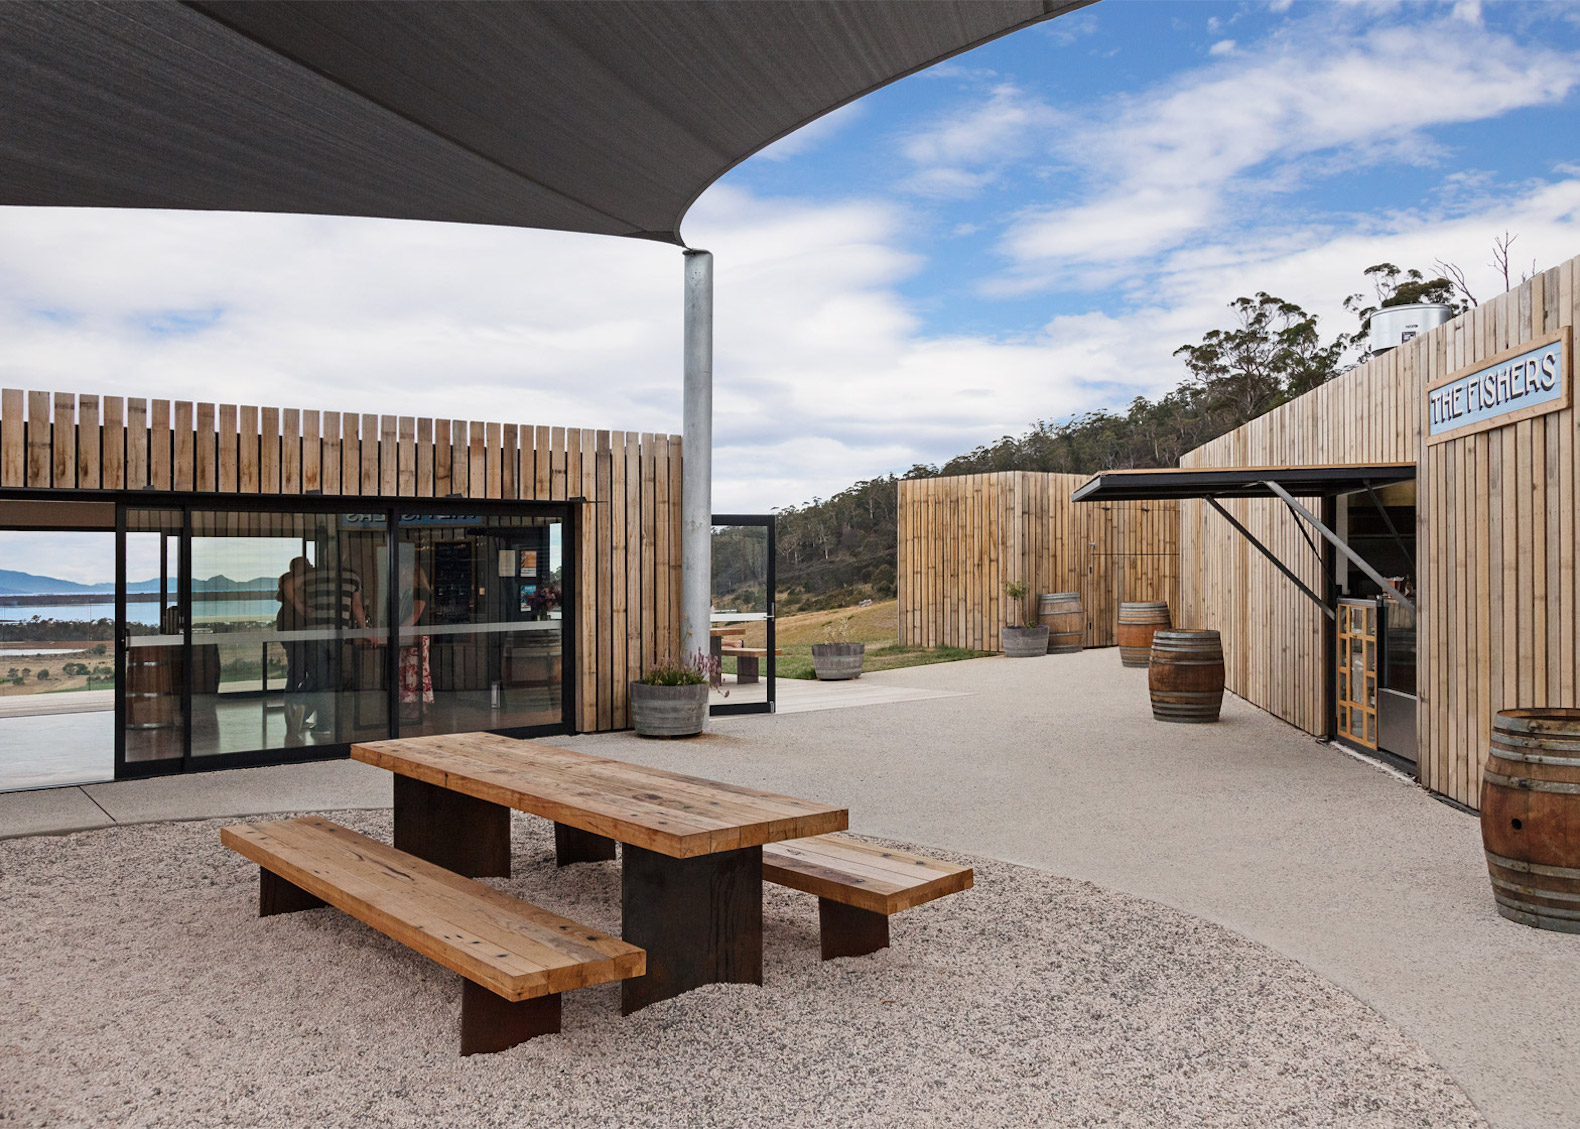 repurposed shipping containers, shipping container architecture, Tasmania lookout tower, Devil's Corner Cellar Door by Cumulus Studio, Devil's Corner Cellar Door Tasmania, Devil's Corner Cellar Door architecture, Devil's Corner Cellar Door Brown Brothers